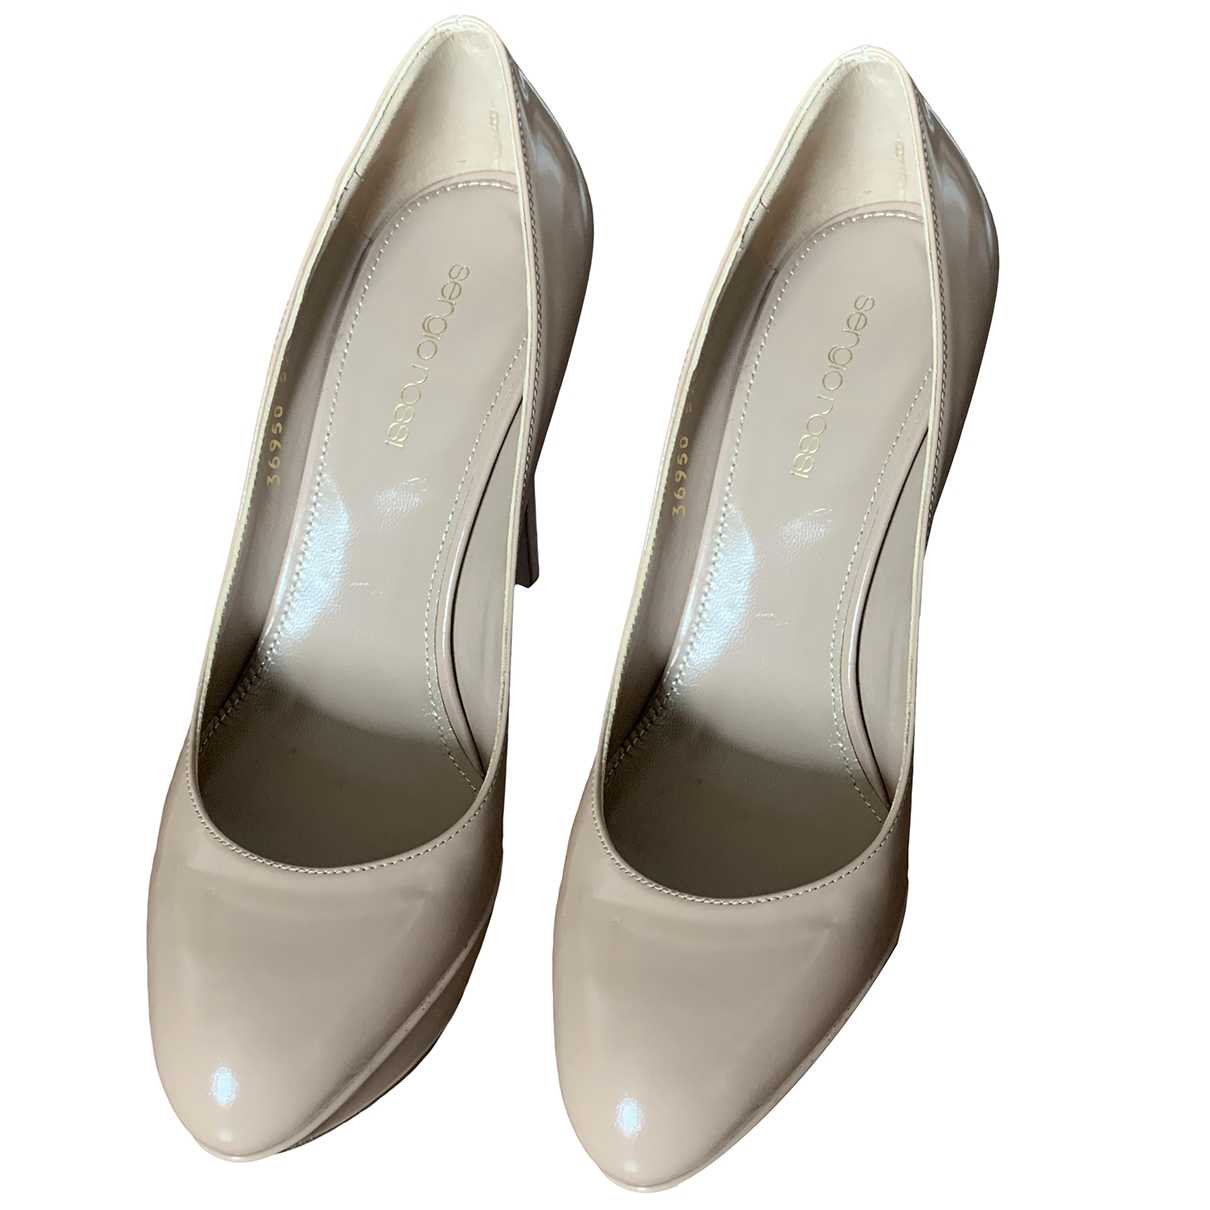 Sergio Rossi \N Beige Patent leather Heels for Women 38.5 EU